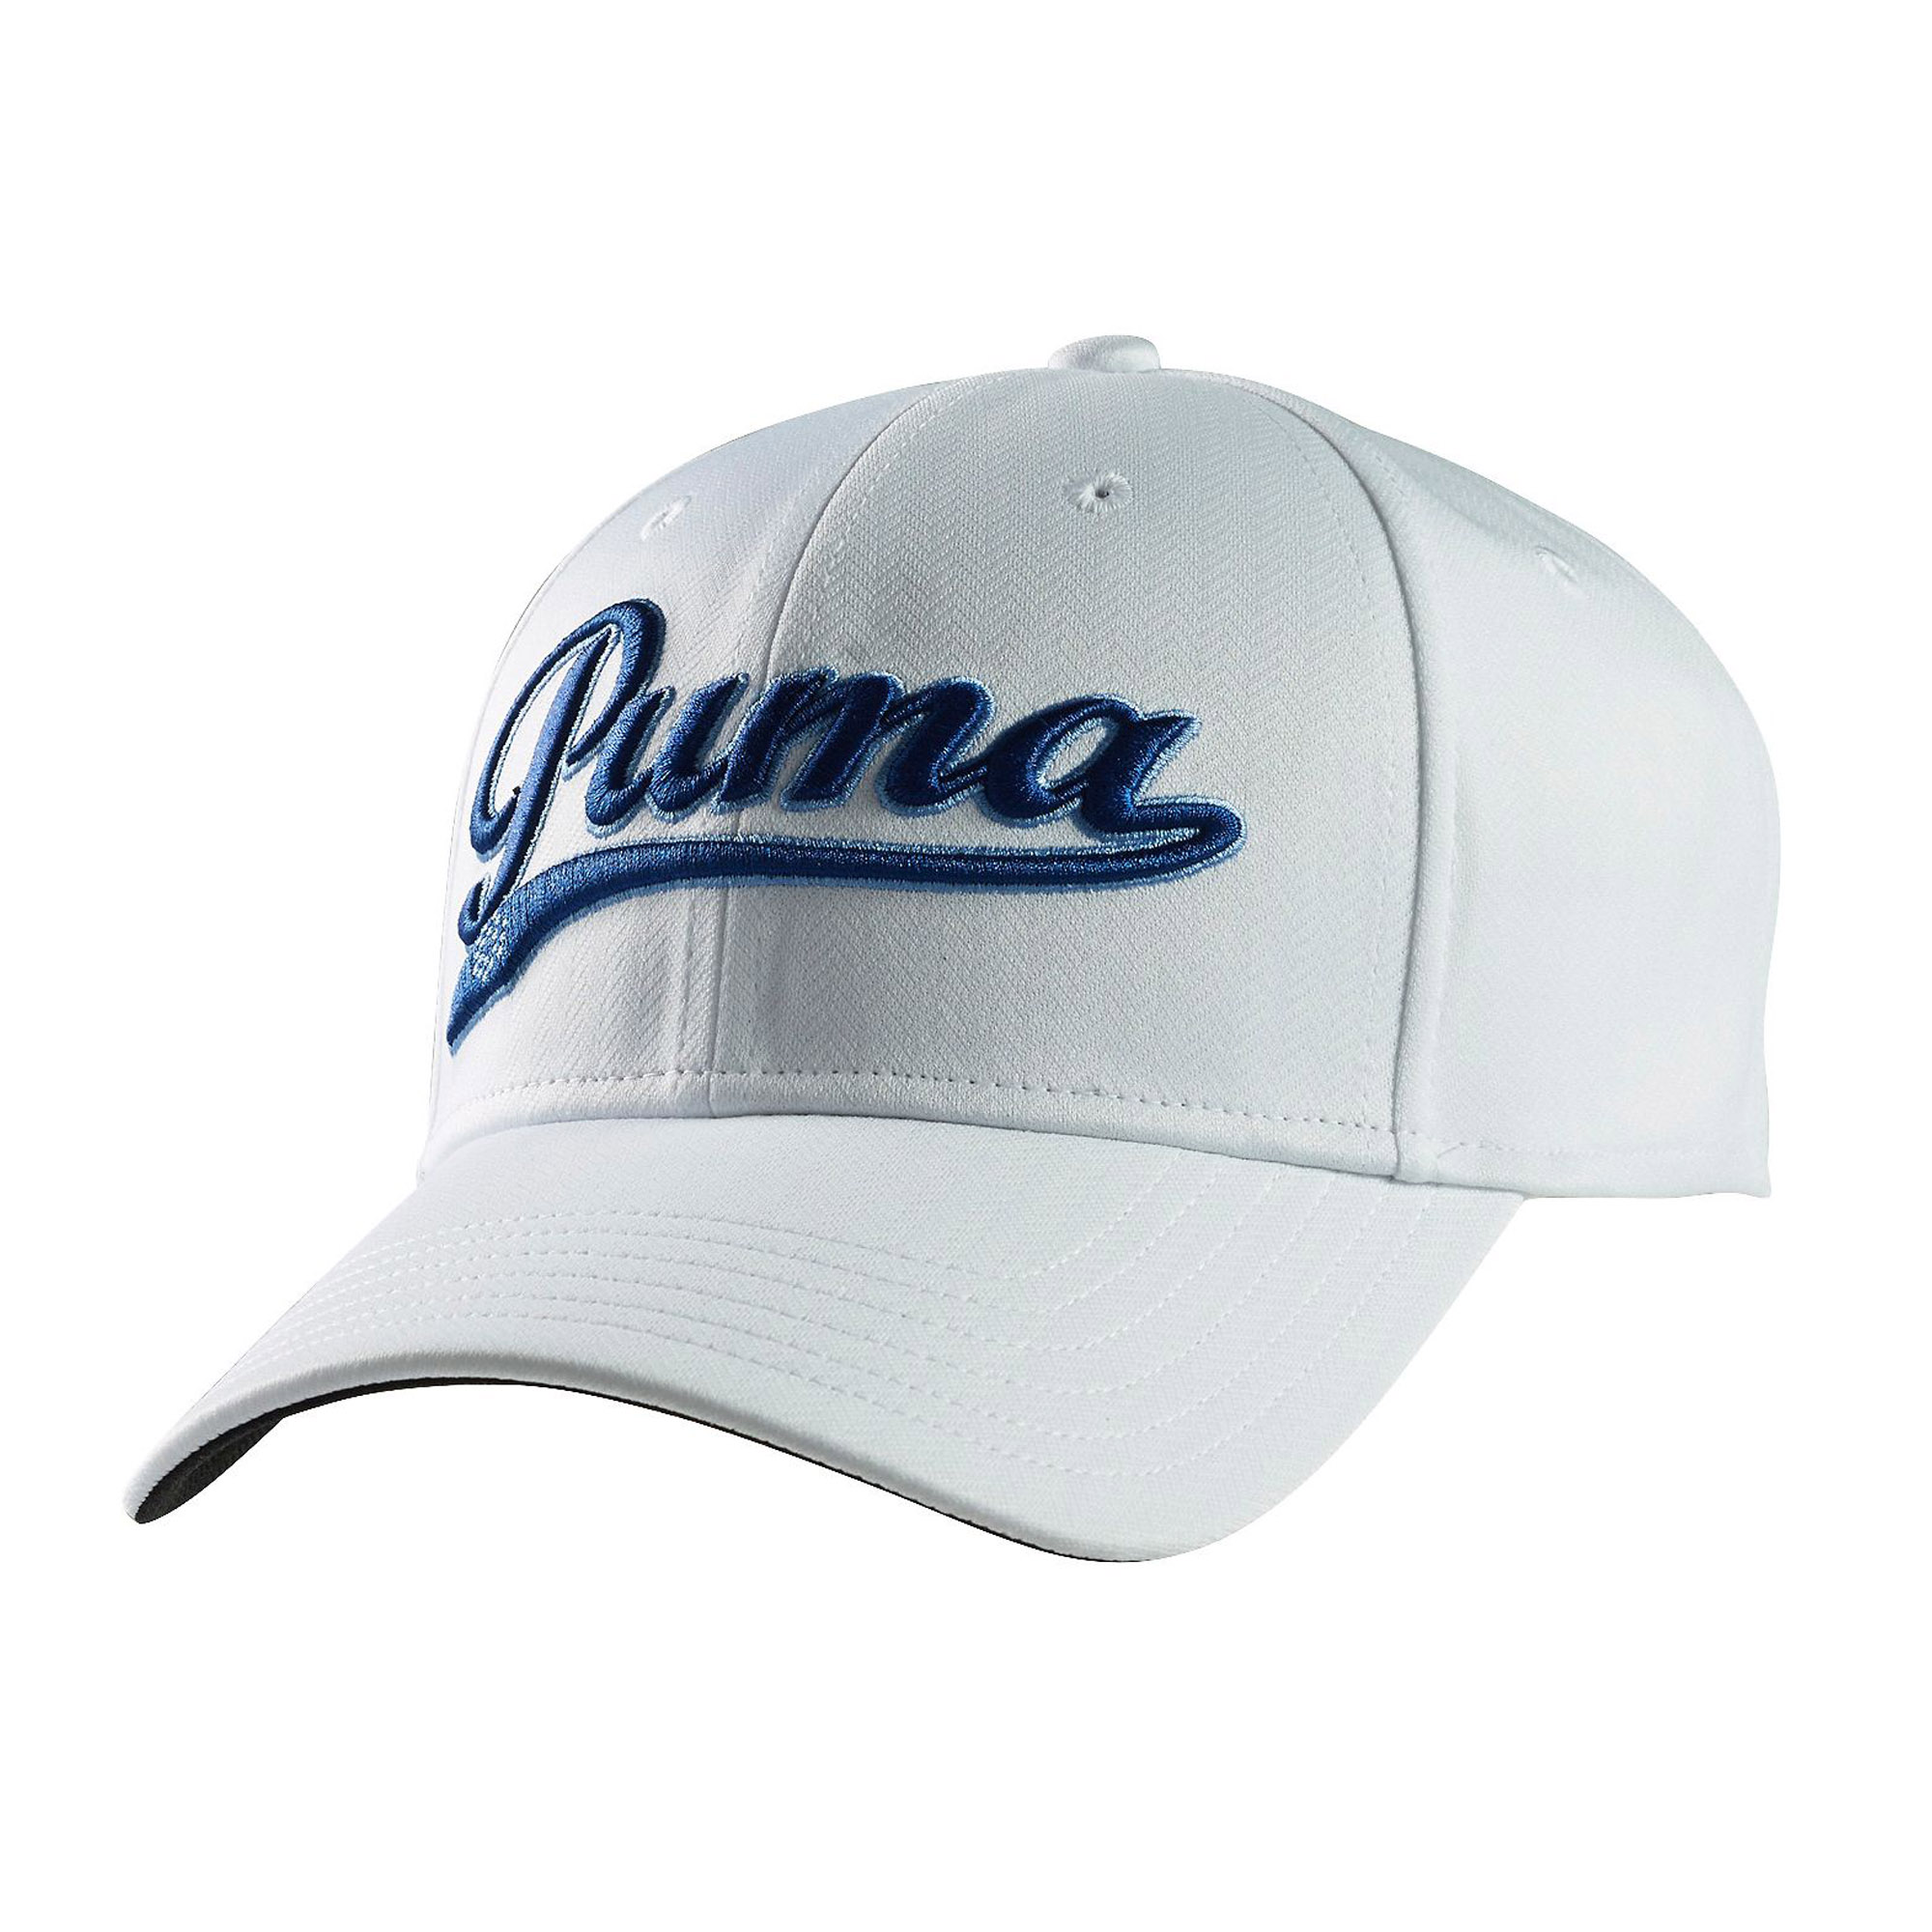 new 2015 golf script cool cell relaxed fit hat color